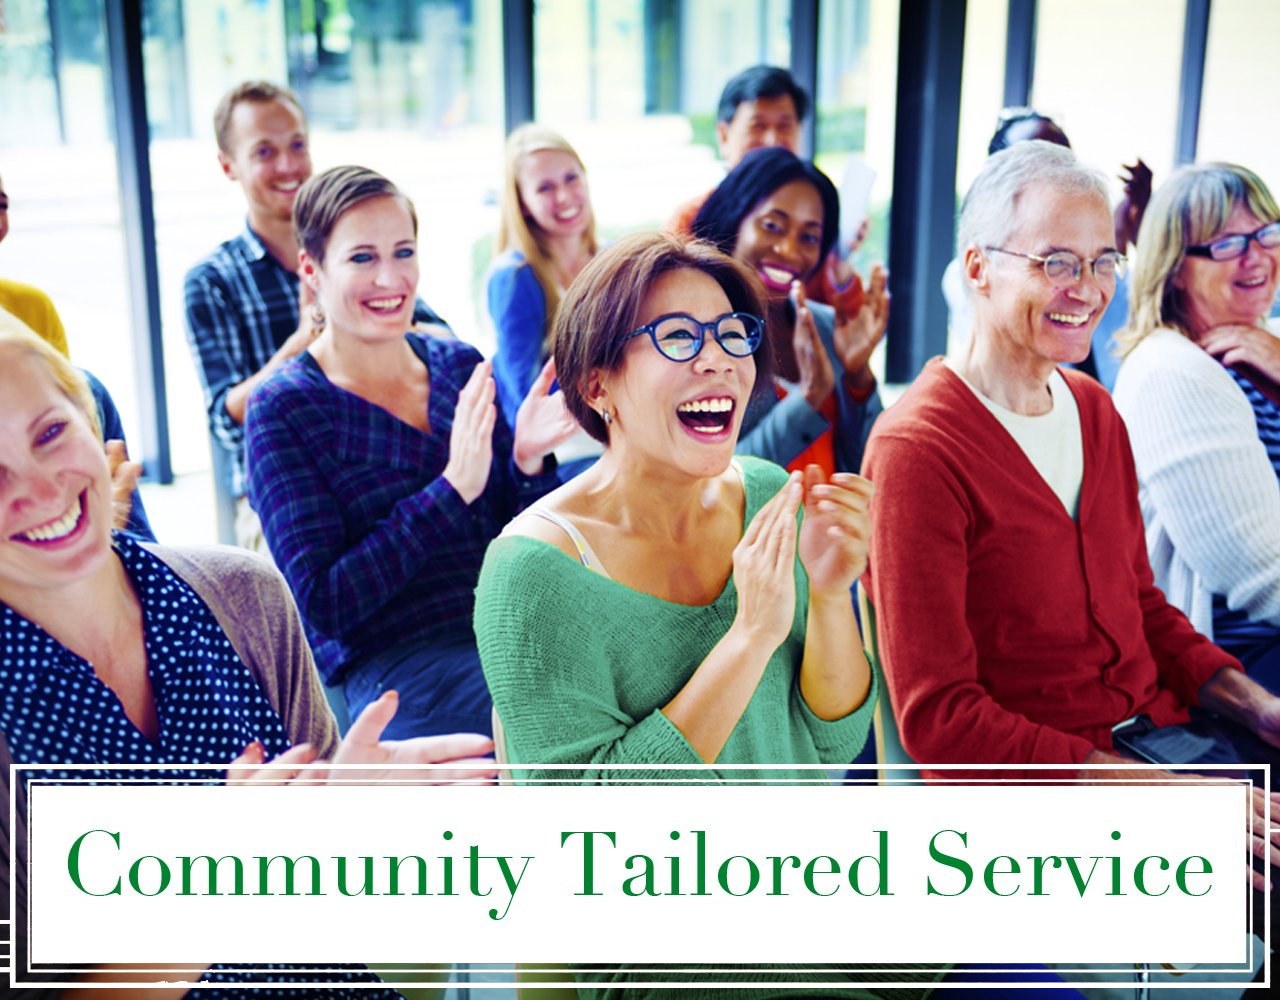 Community Tailored Service